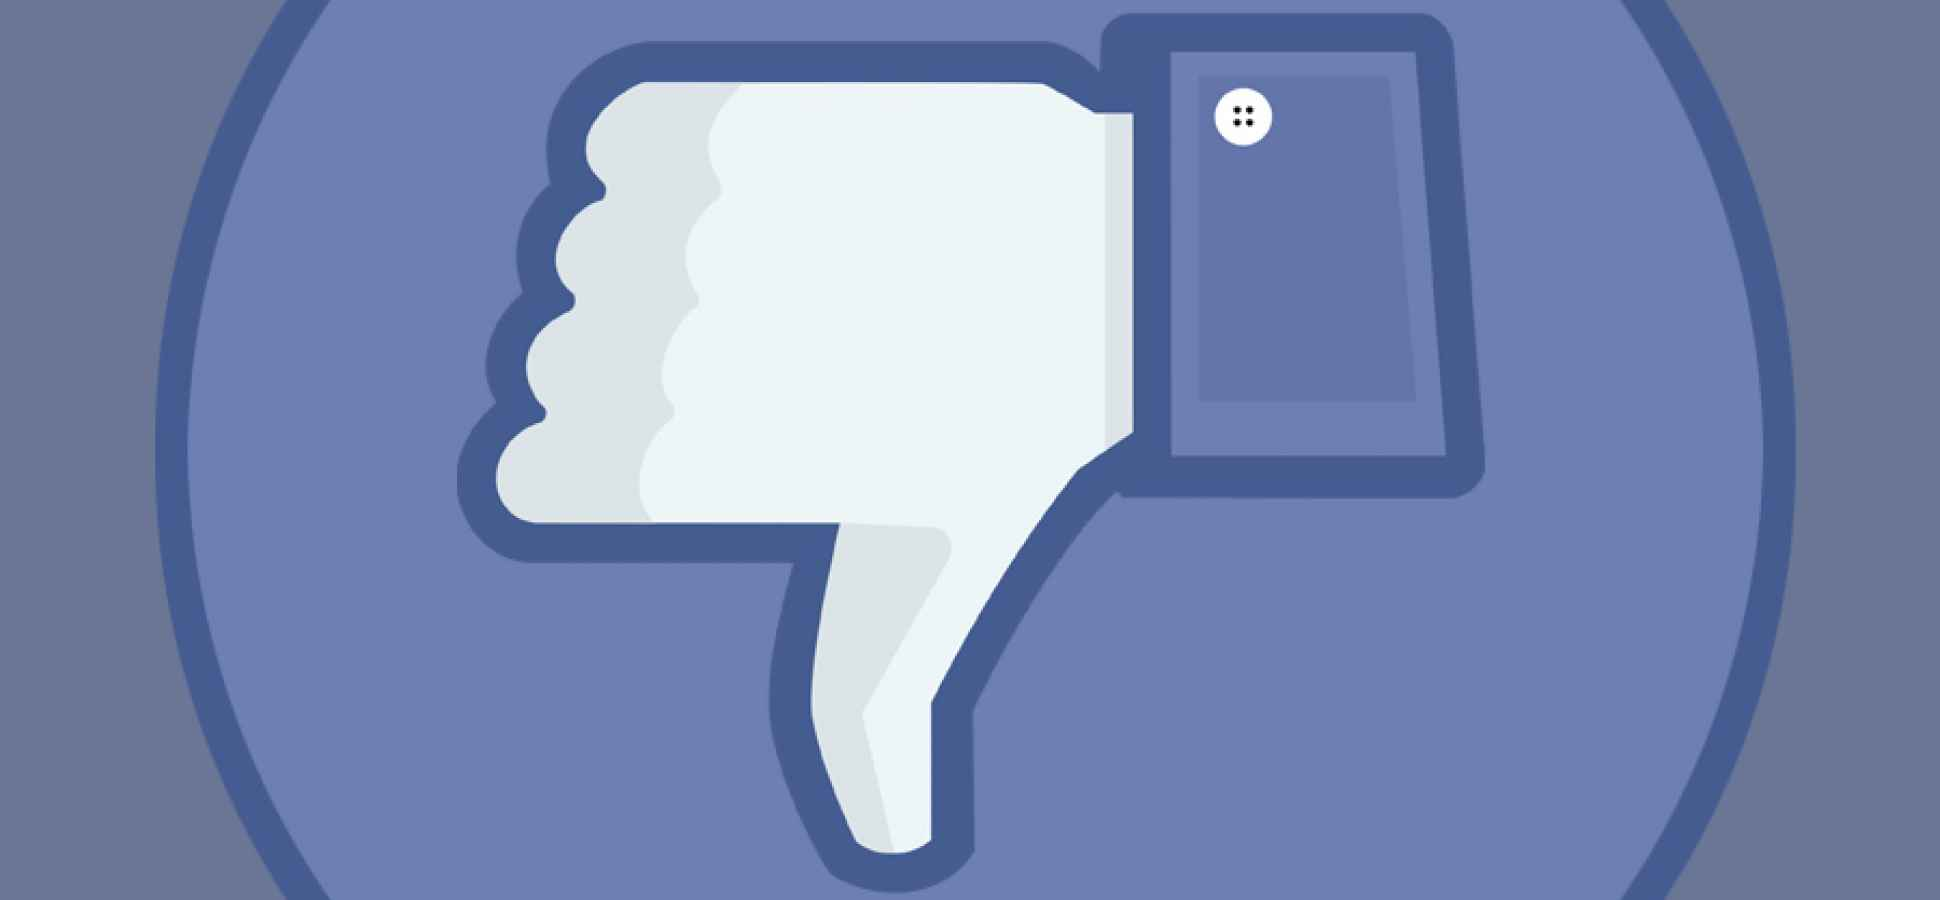 The Latest Facebook Scandal: The Company Uploaded Data on 1.5 Million Users Without Permission